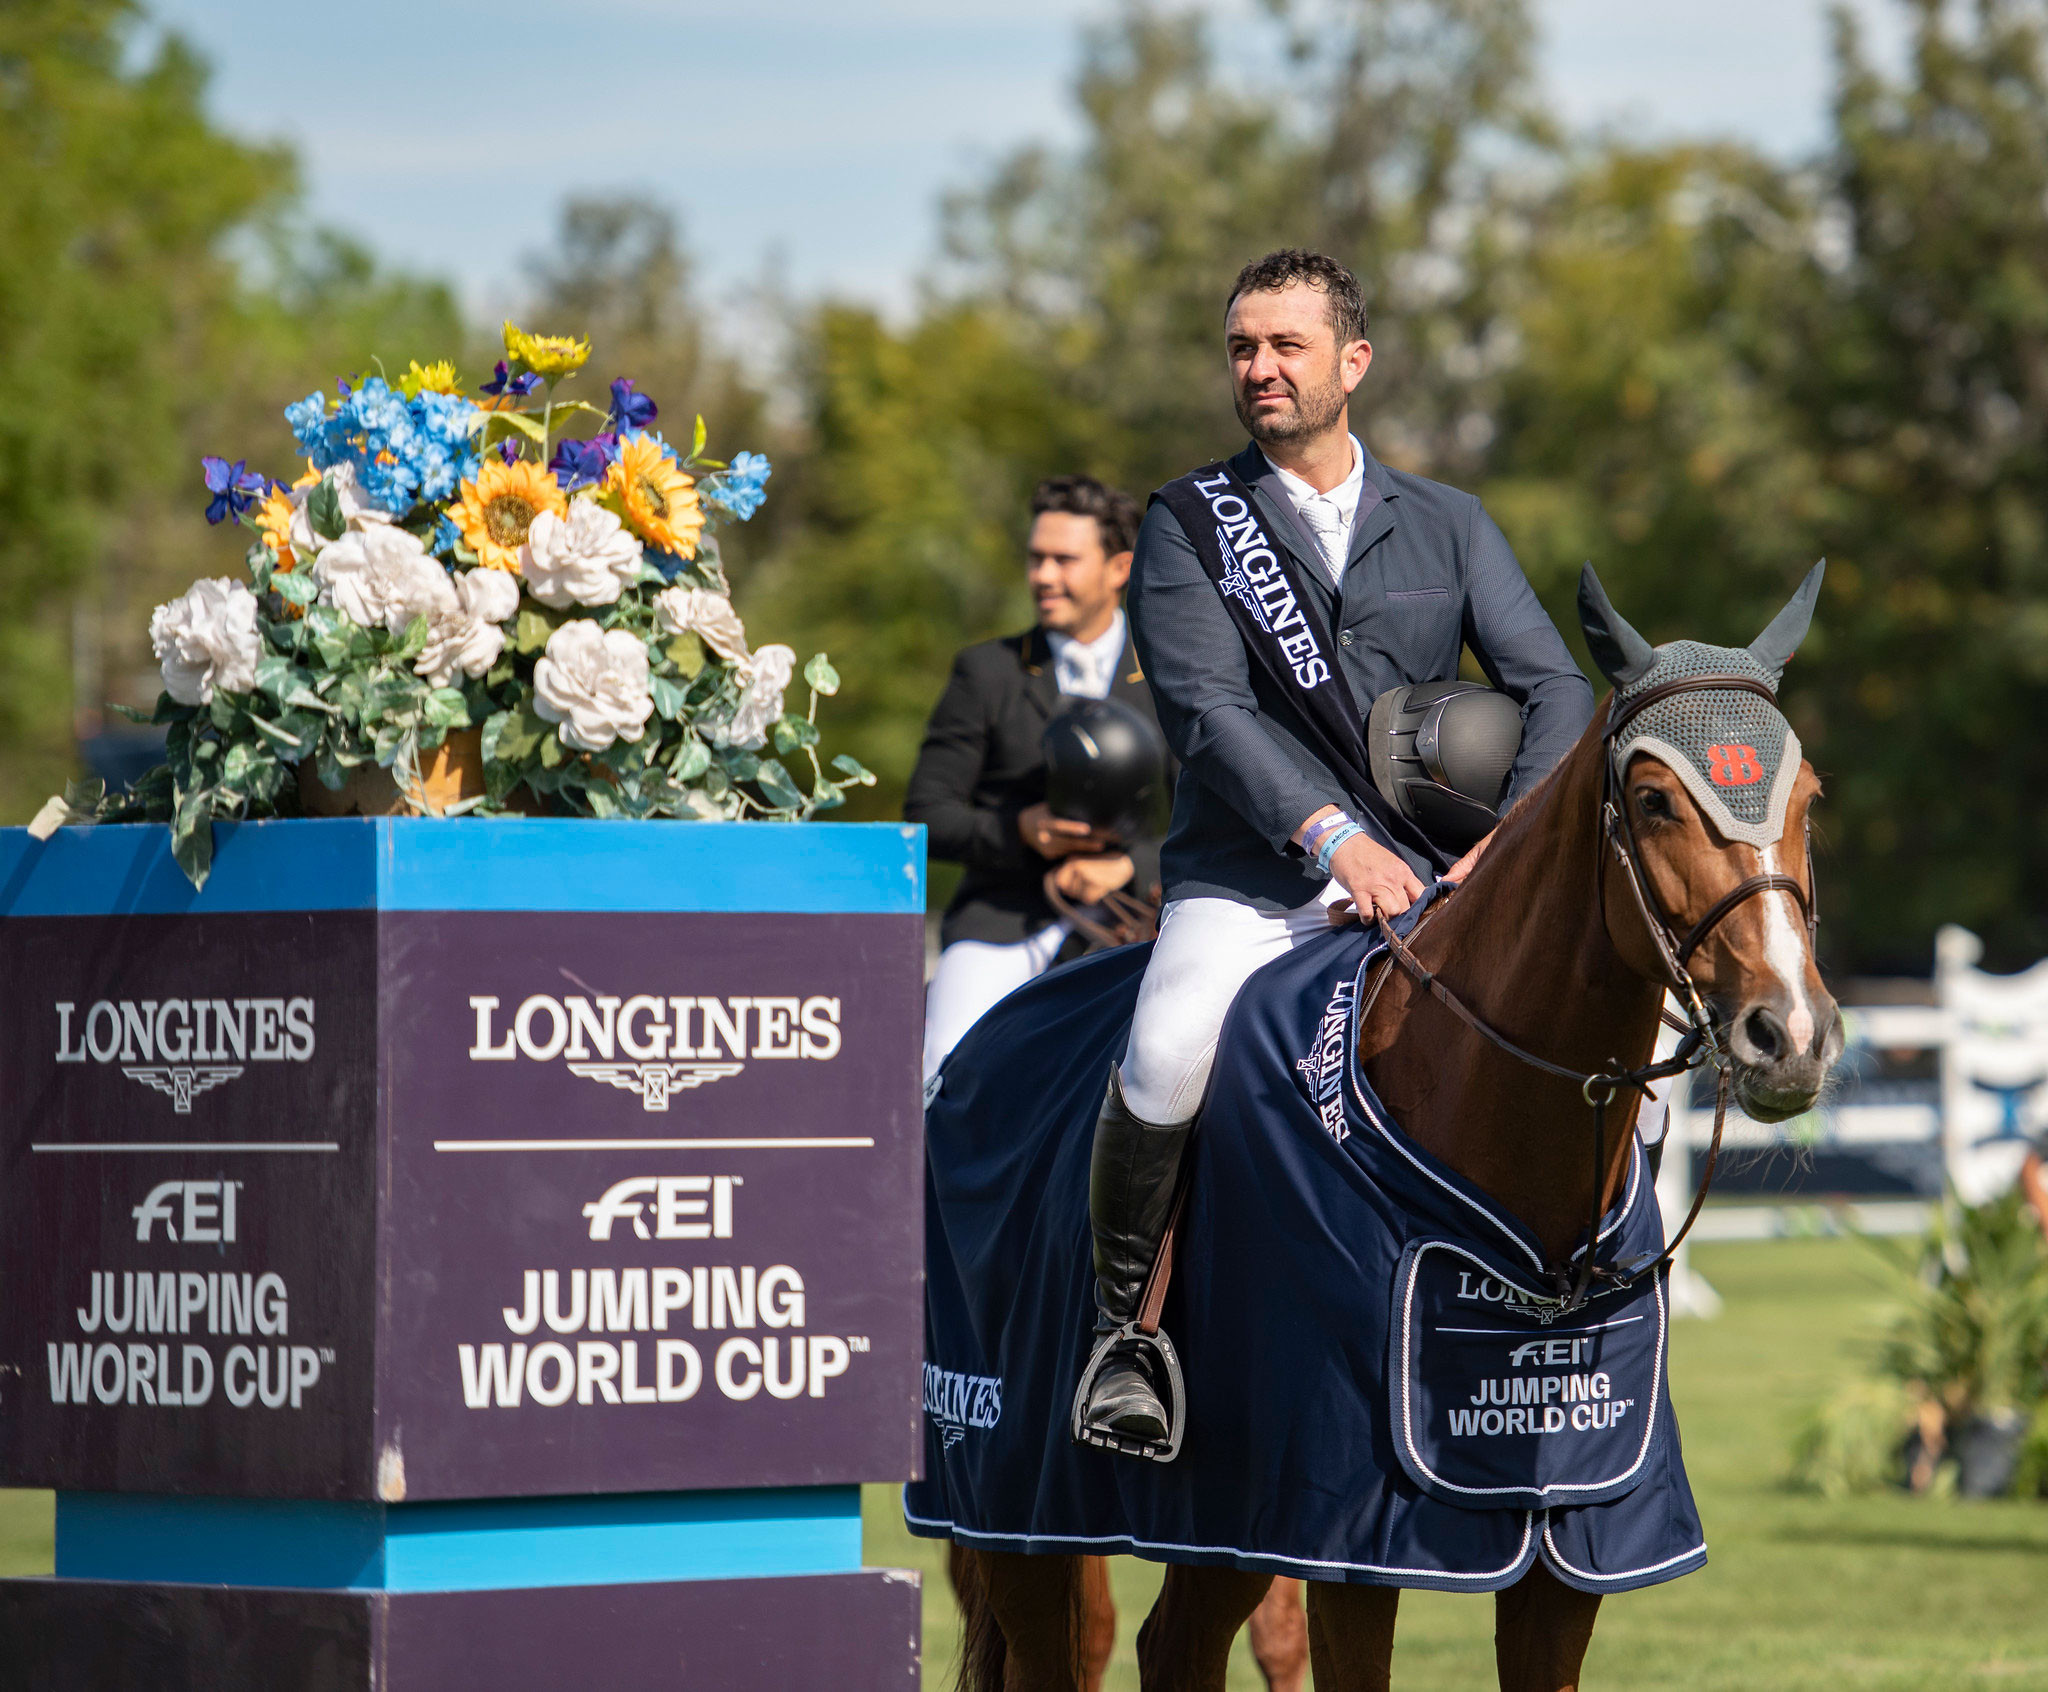 Onate records home victory at FEI Jumping World Cup in León